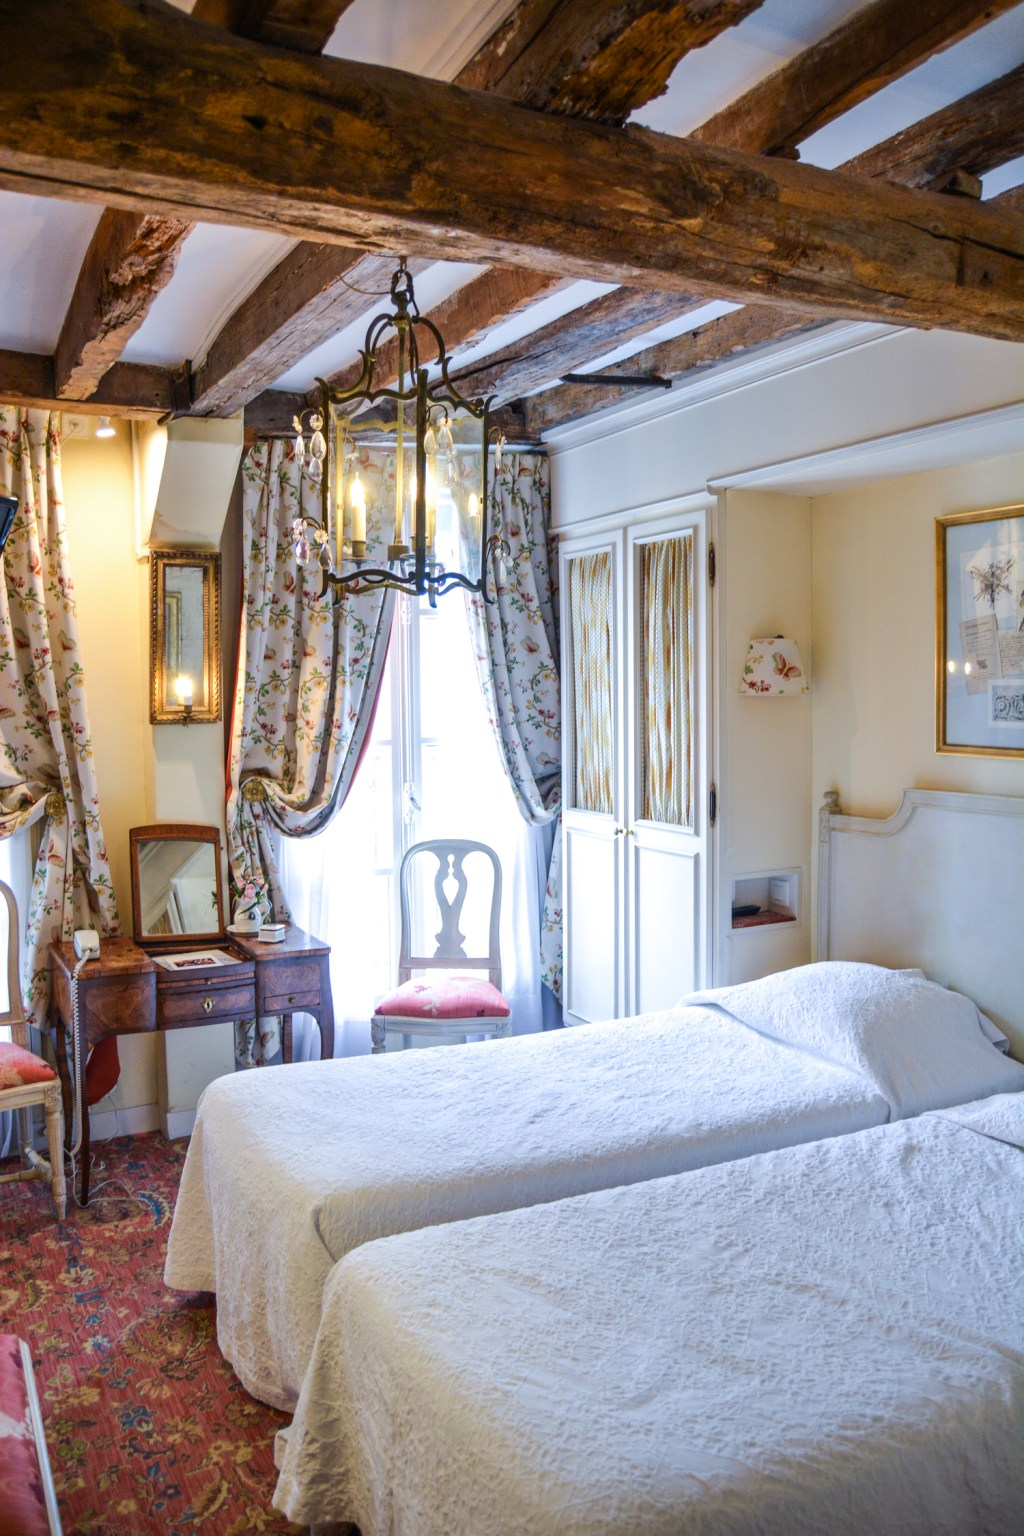 Hotel Caron de Beaumarchais in Pariss - France Travel - @lacegraceblog1